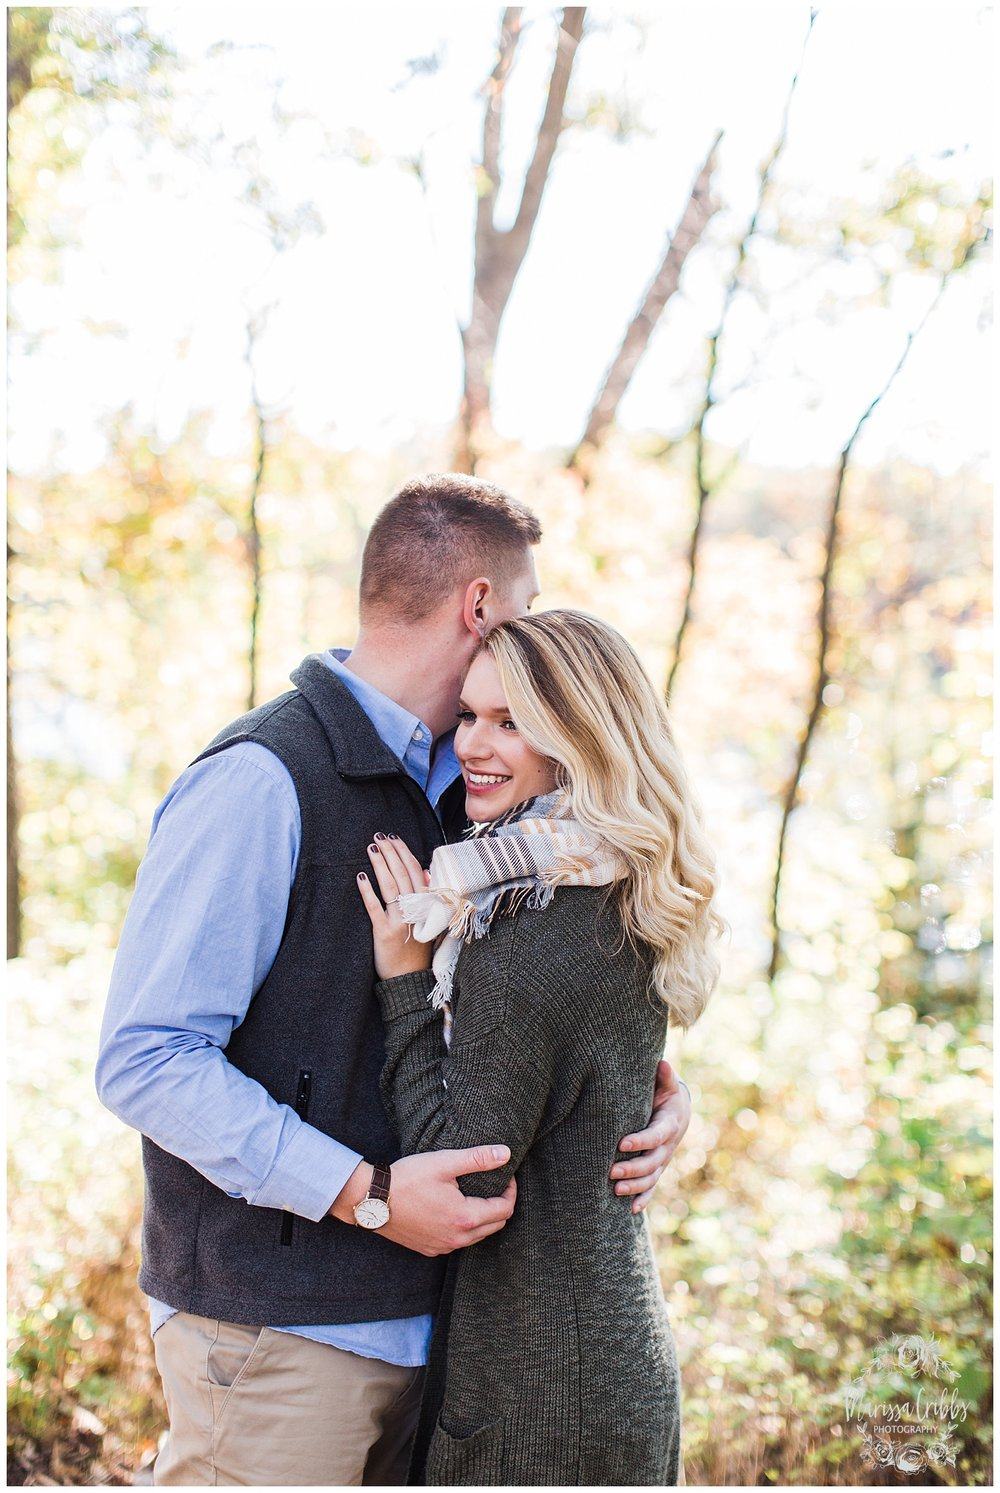 MORGAN HUGHES & RYAN ENGAGEMENT | KC ENGAGEMENT PHOTOS | MARISSA CRIBBS PHOTOGRAPHY_3380.jpg